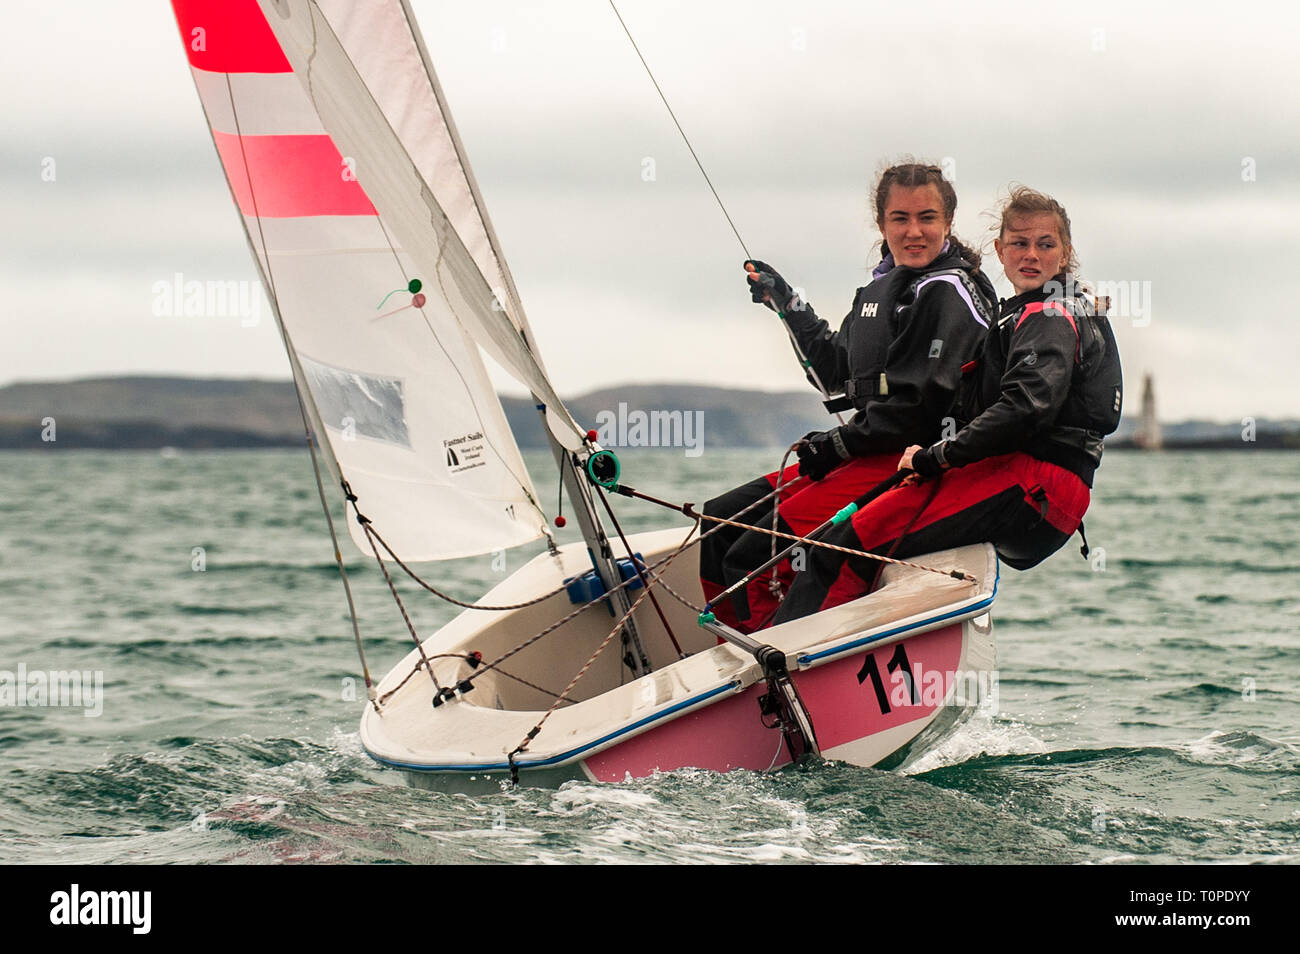 schull-west-cork-ireland-21st-mar-2019-the-munster-schools-team-racing-sailing-championships-were-held-in-schull-today-the-event-brought-teams-of-6-from-13-schools-across-munster-the-event-concludes-next-thursday-credit-andy-gibsonalamy-live-news-T0PDYY.jpg